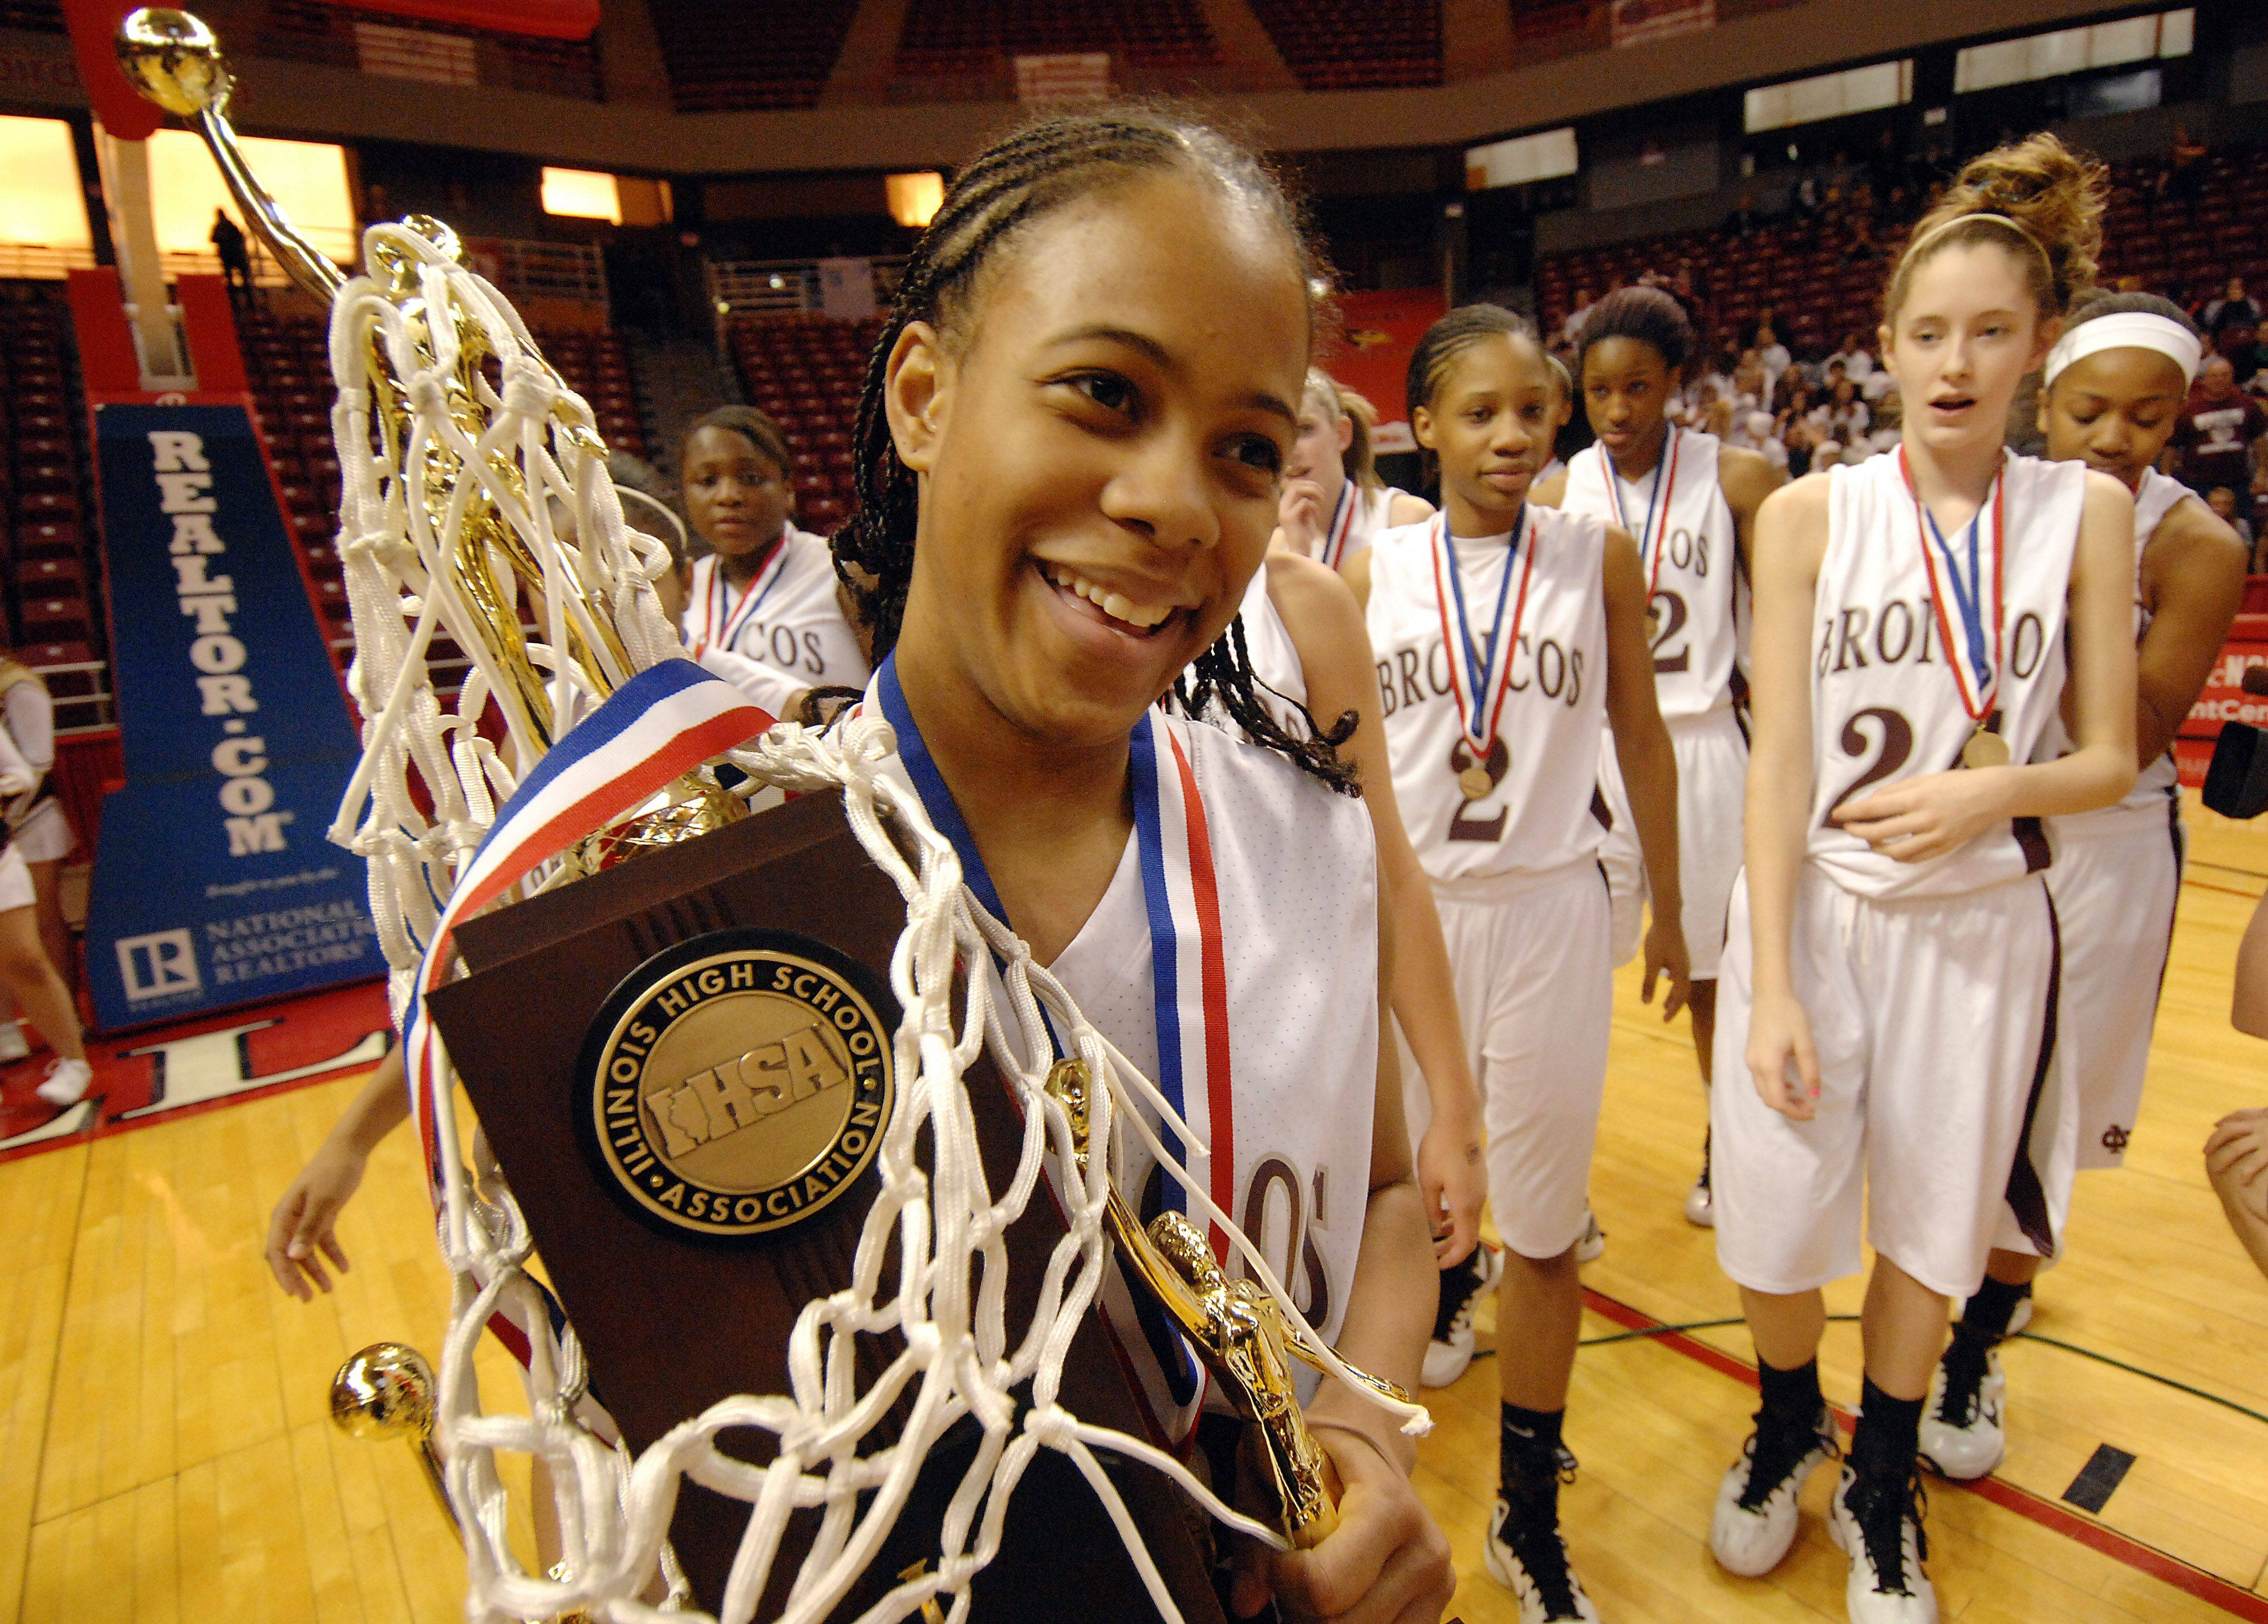 Montini's Kiki Wilson carries the trophy after their victory over Hillcrest at Redbird Arena in Normal.